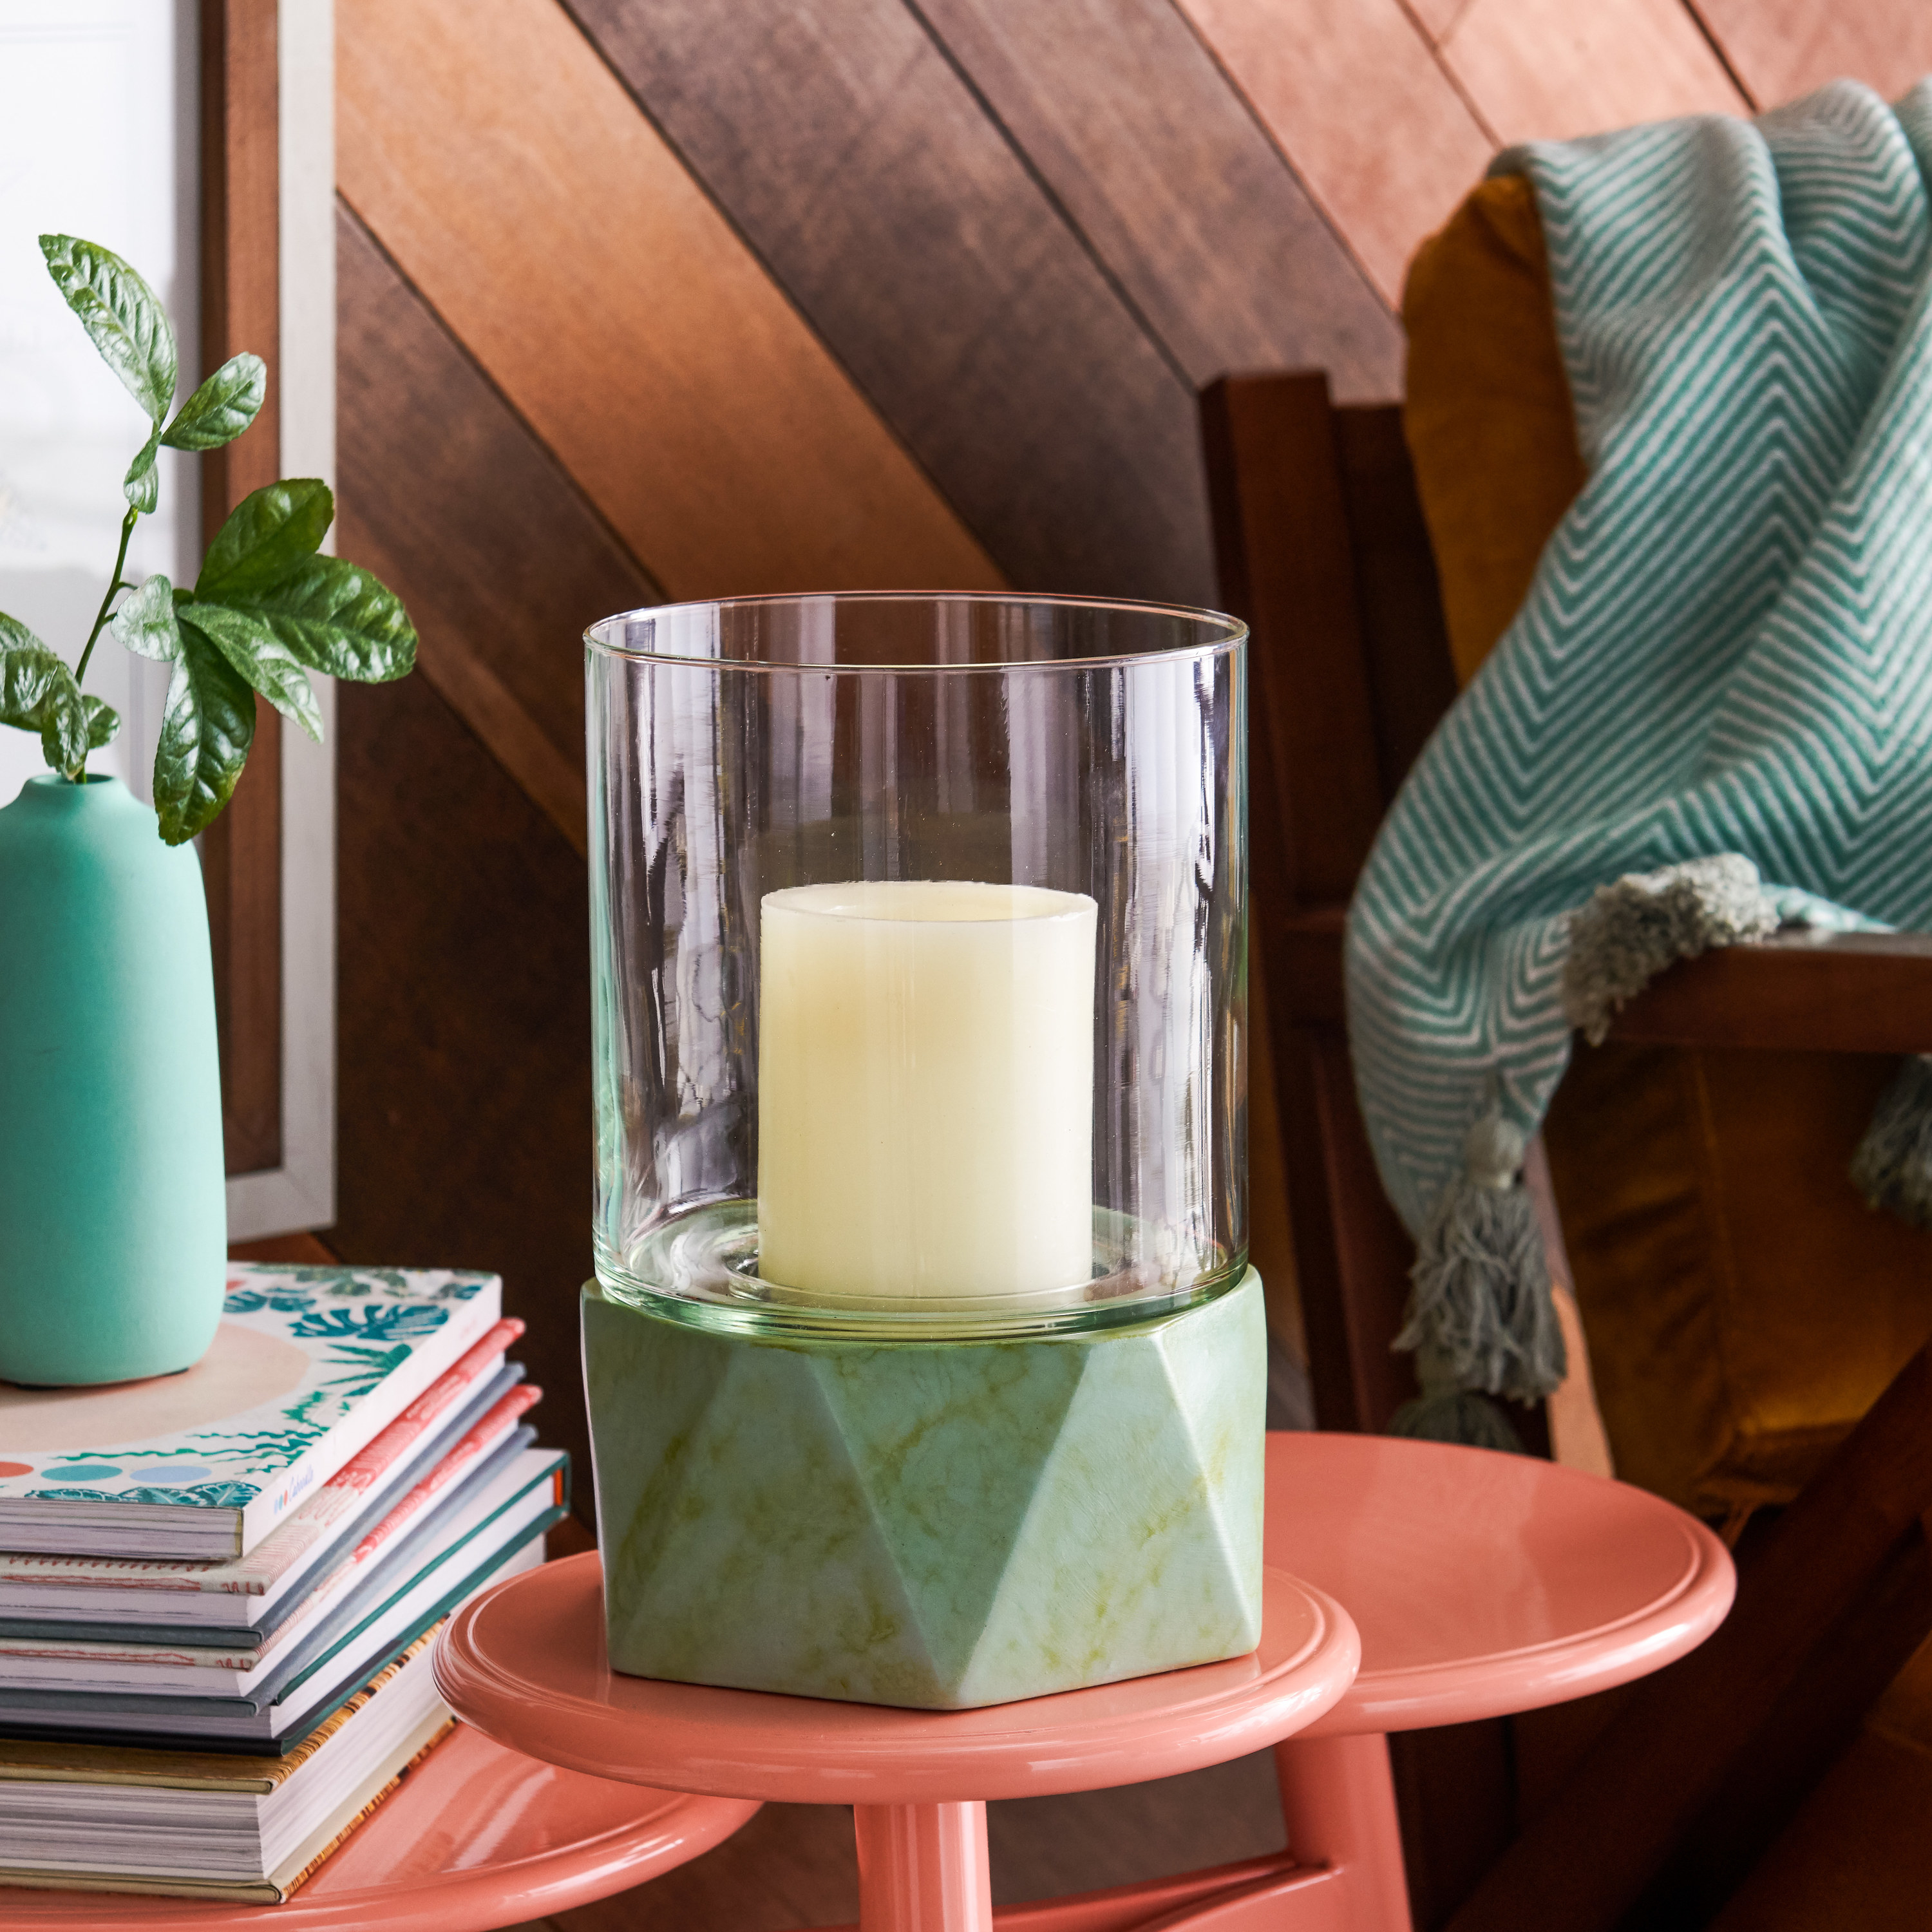 The green votive candle holder